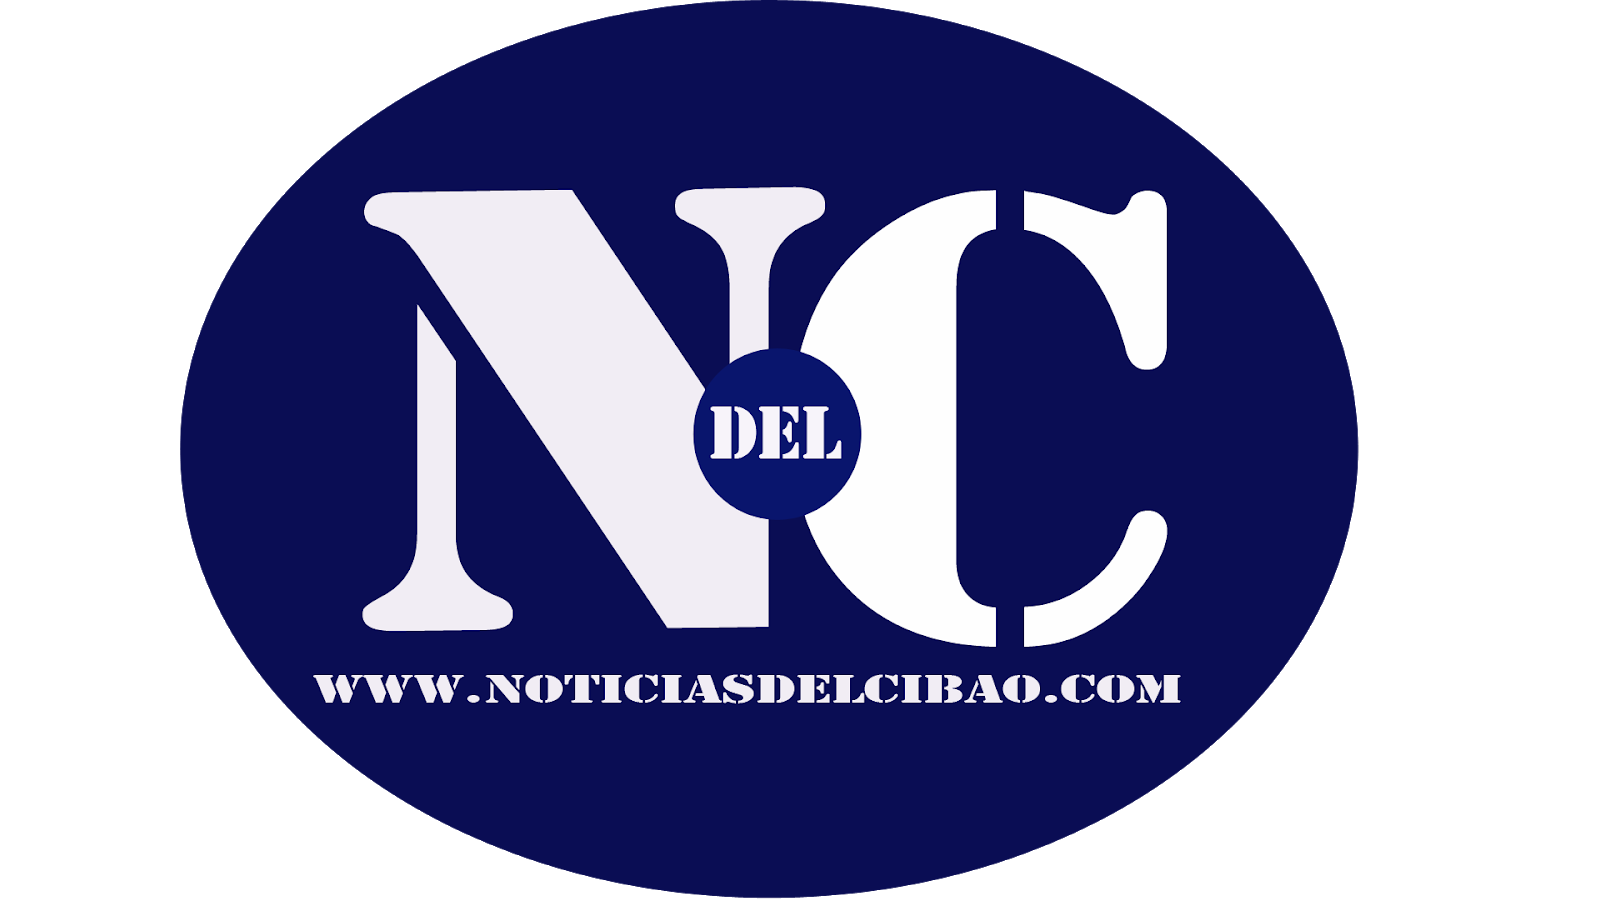 www.noticiasdelcibao.com